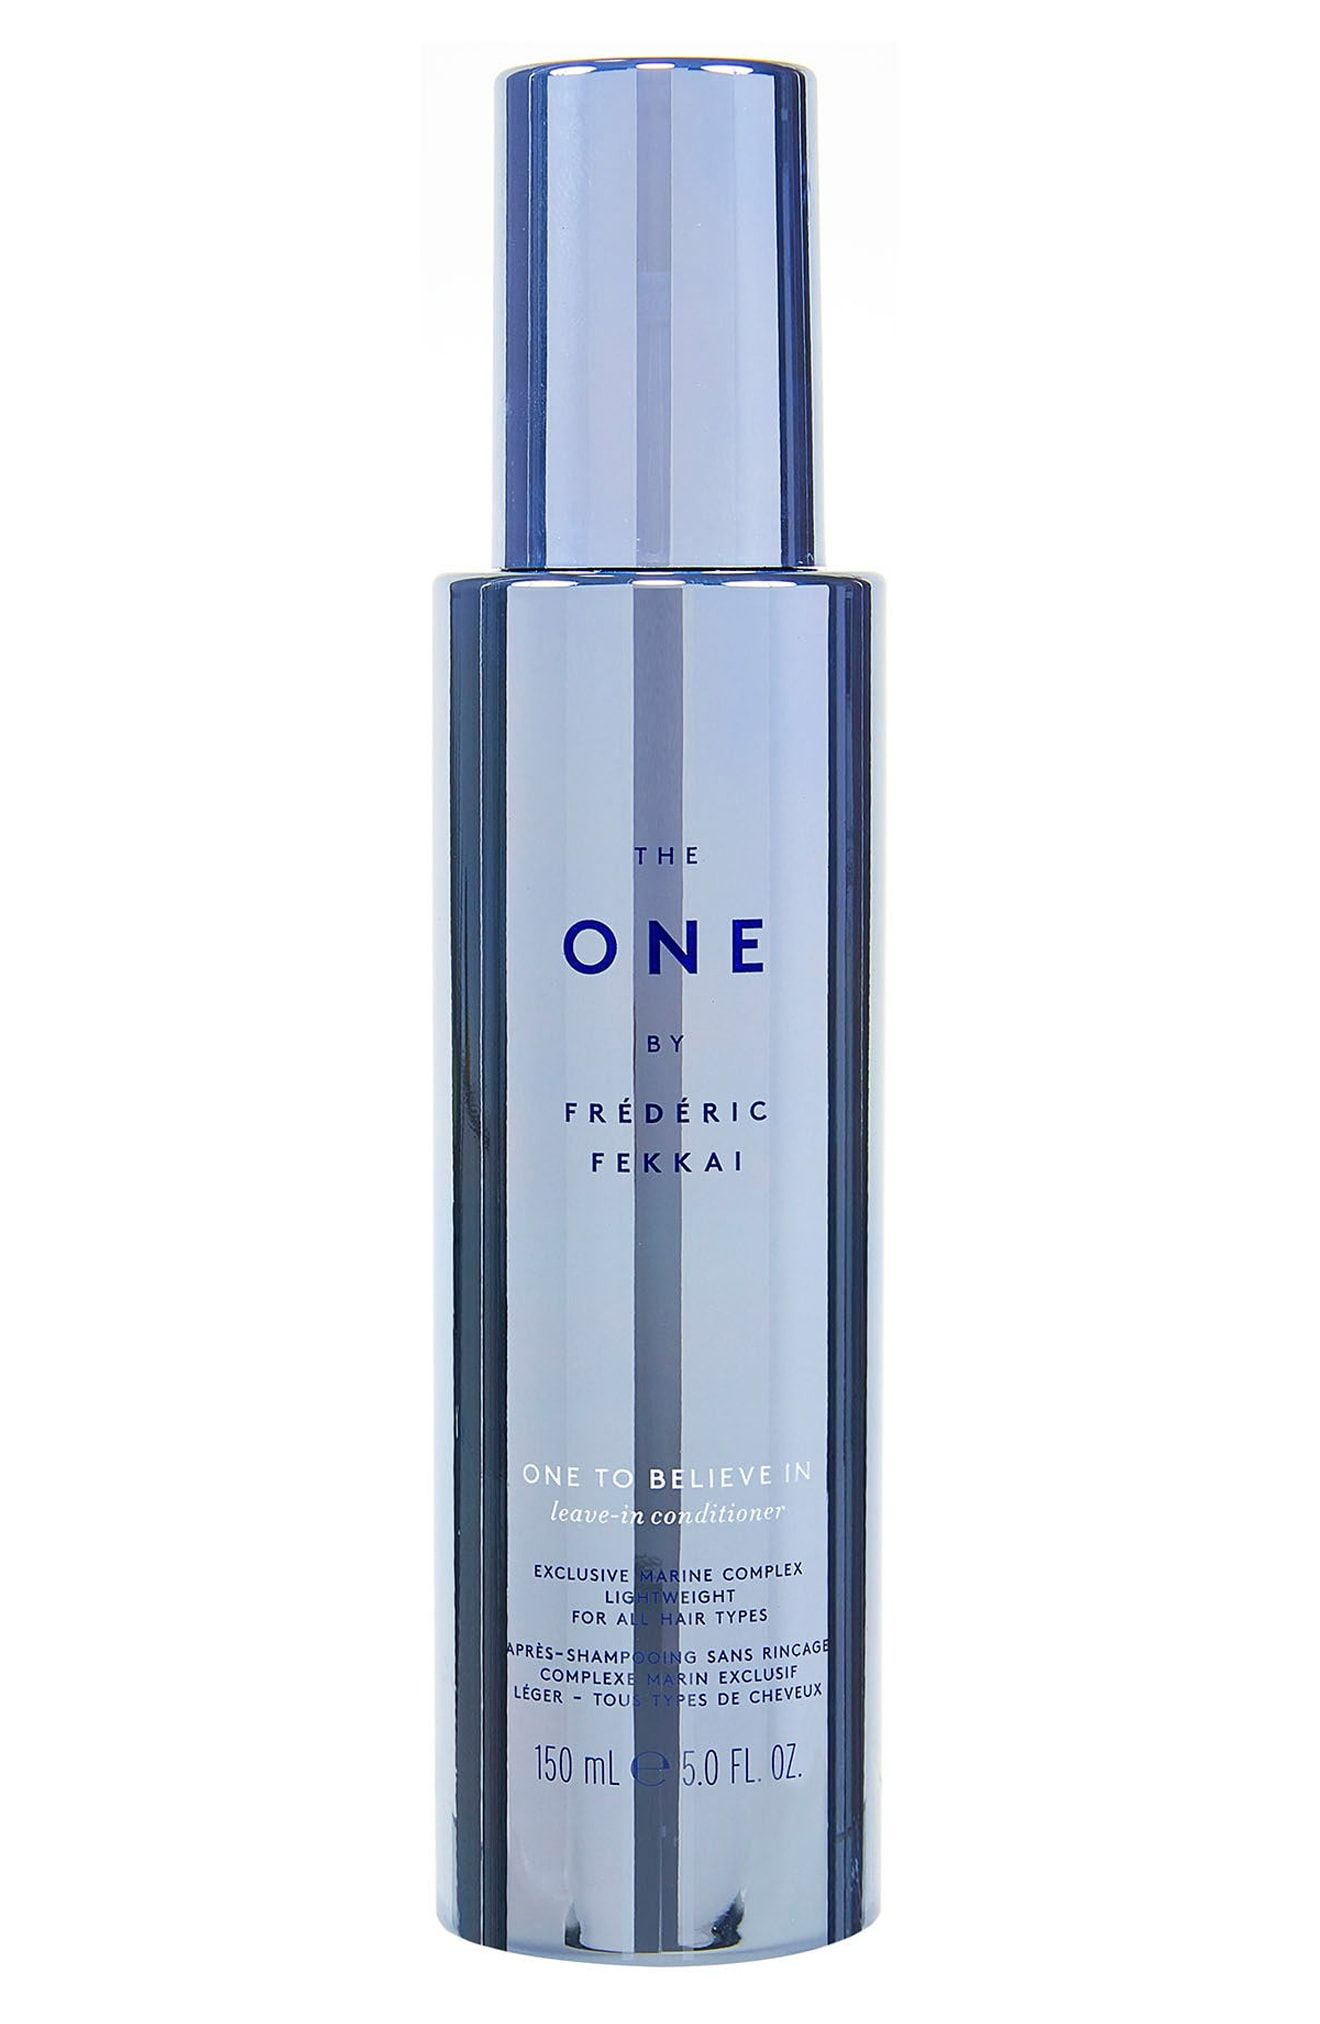 The One by Frederic Fekkai One to Believe In Leave-In Conditioner